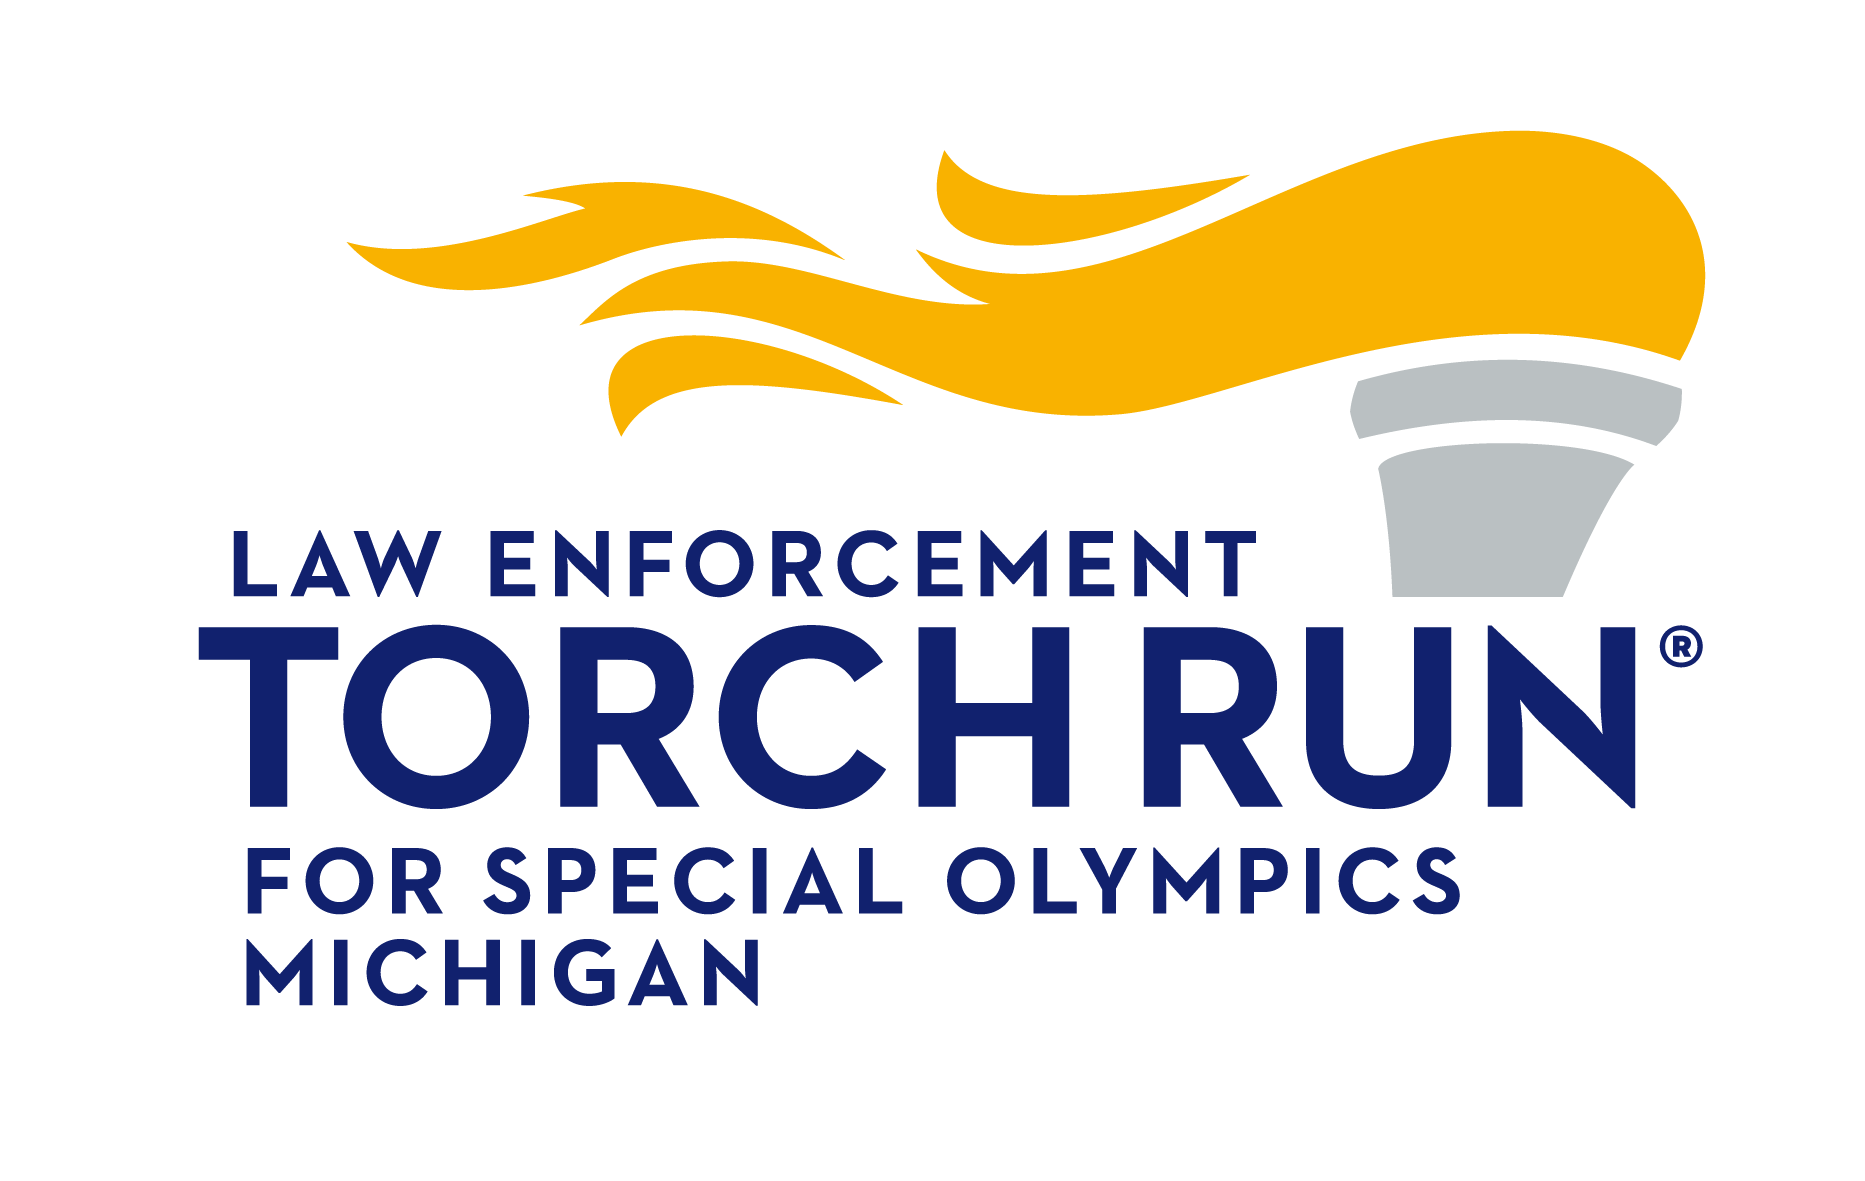 Law Enforcement Torch Run for Special Olympics Michigan